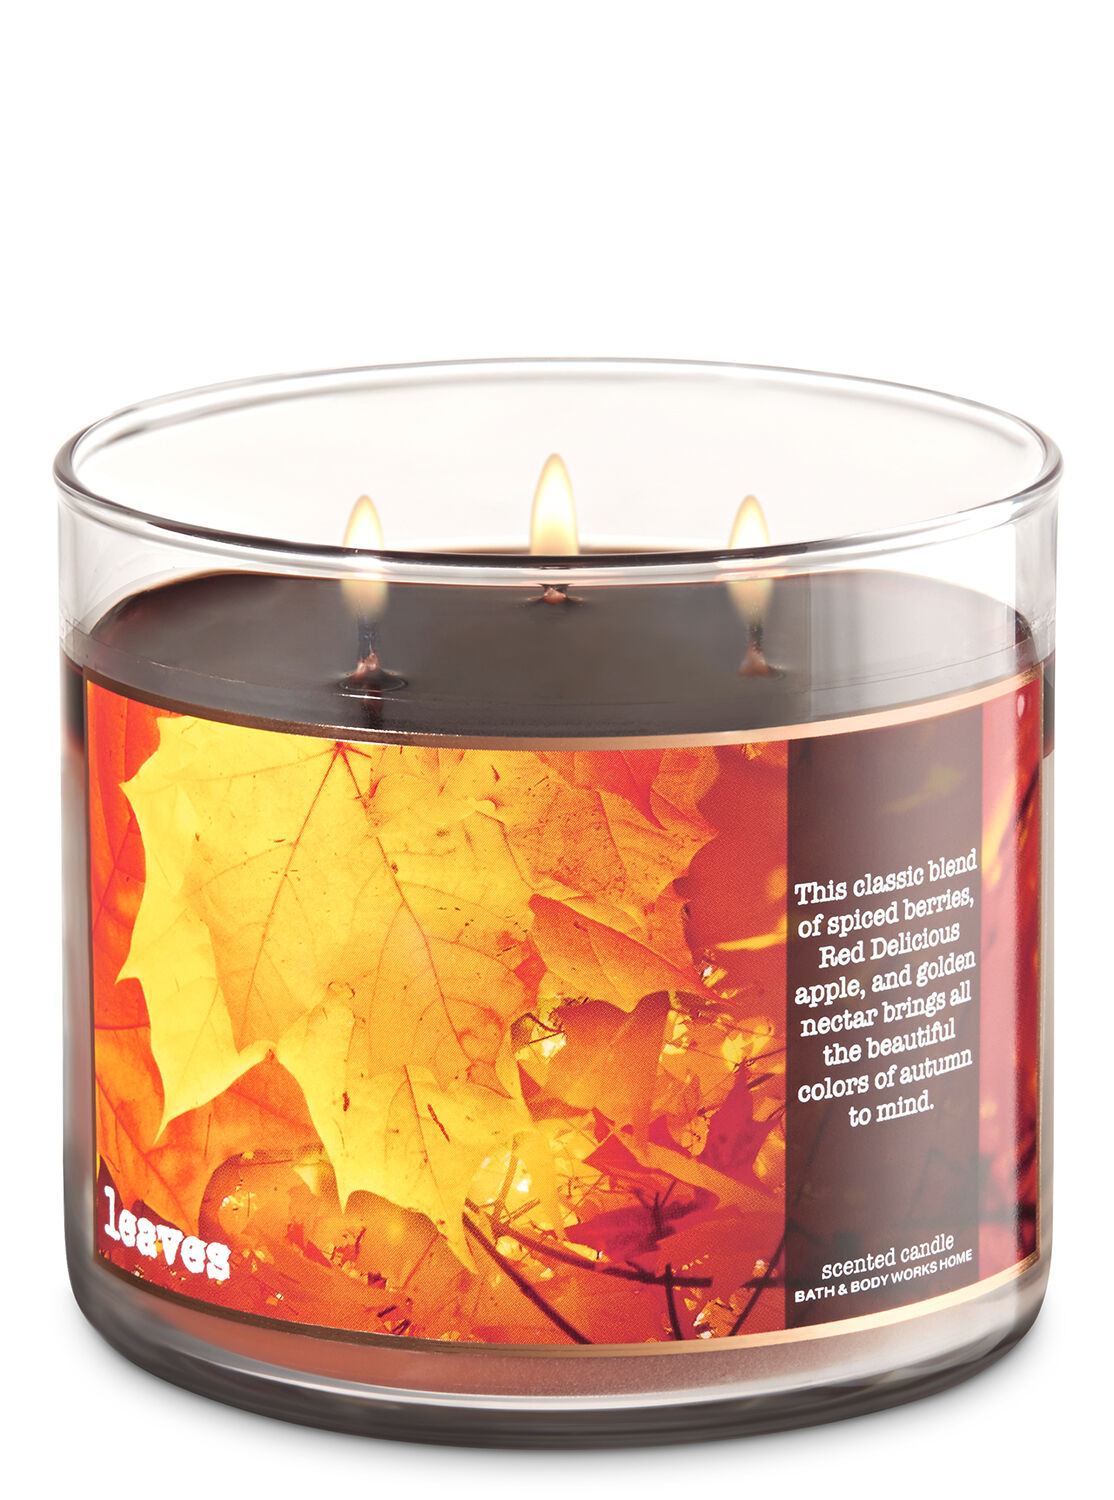 Leaves 3 Wick Candle   Bath And Body Works3 Wick Candles   Bath   Body Works. Bath And Body Shop Toronto. Home Design Ideas